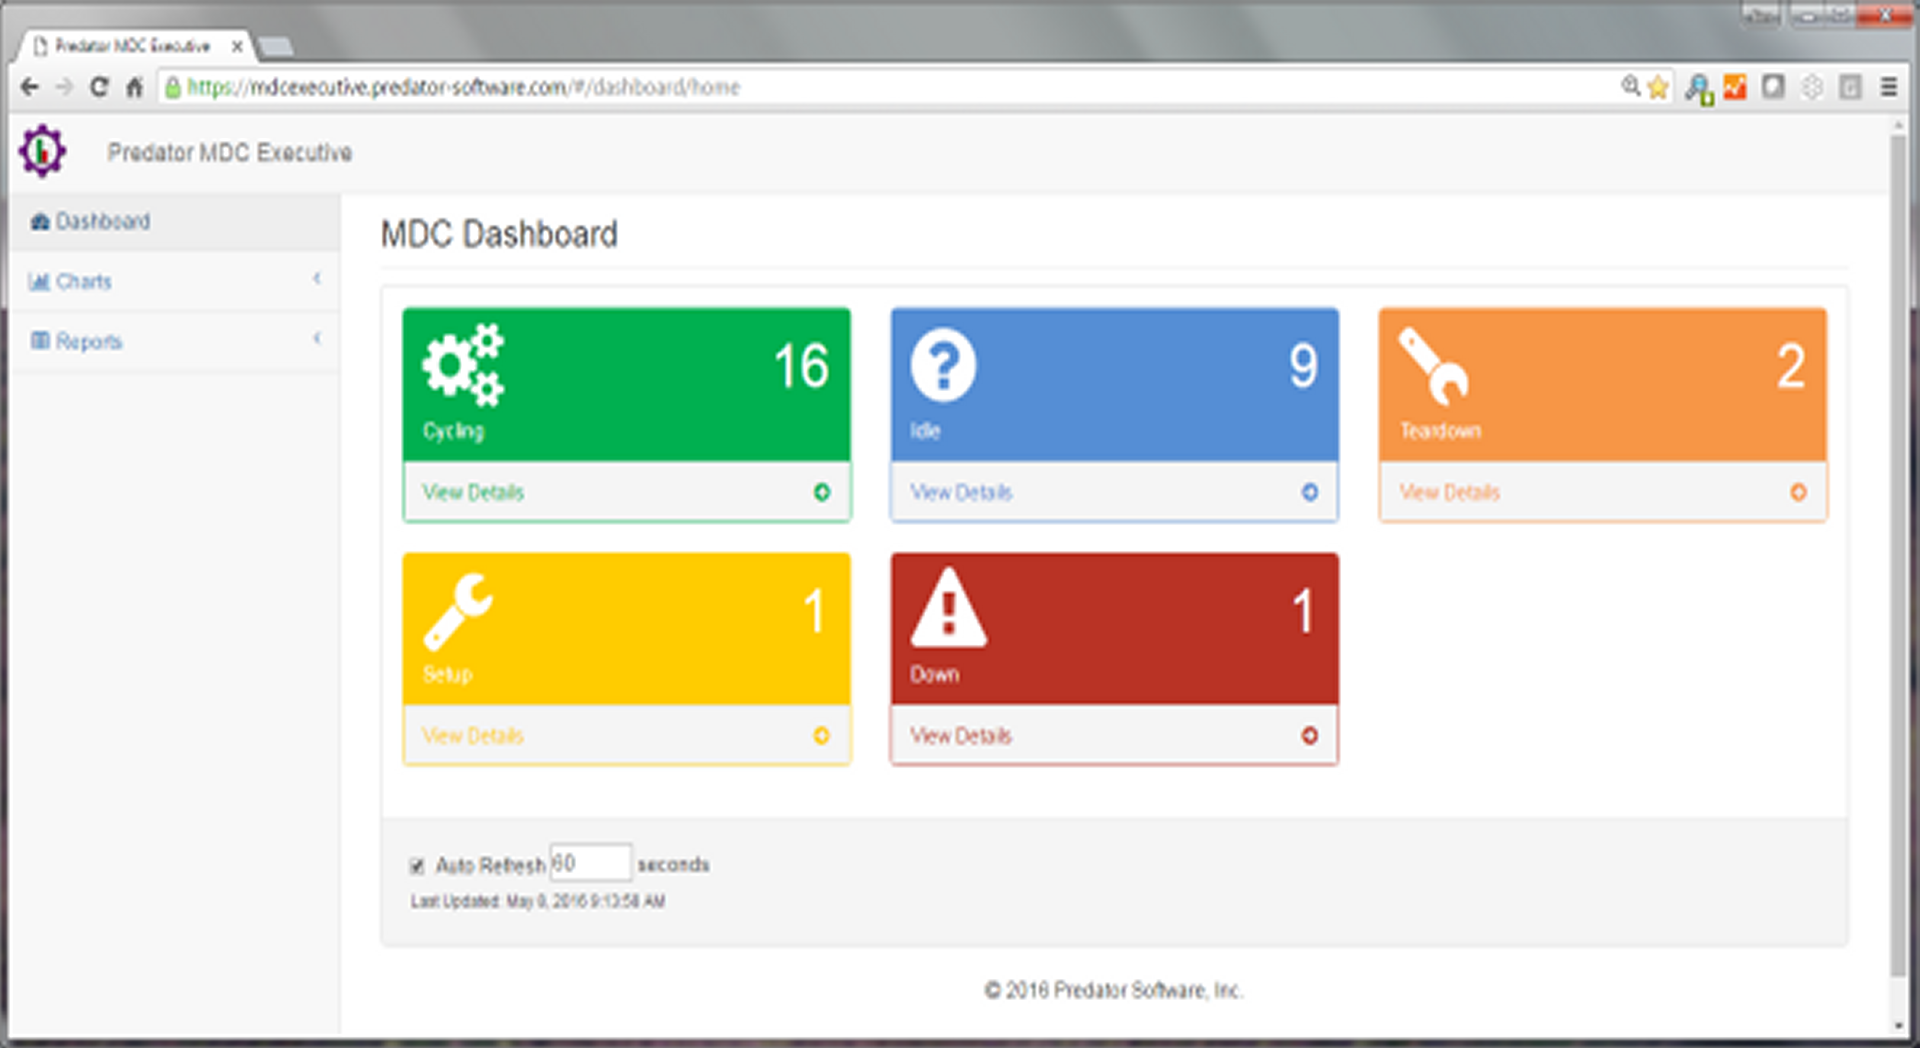 Predator MDC Executive Dashboard